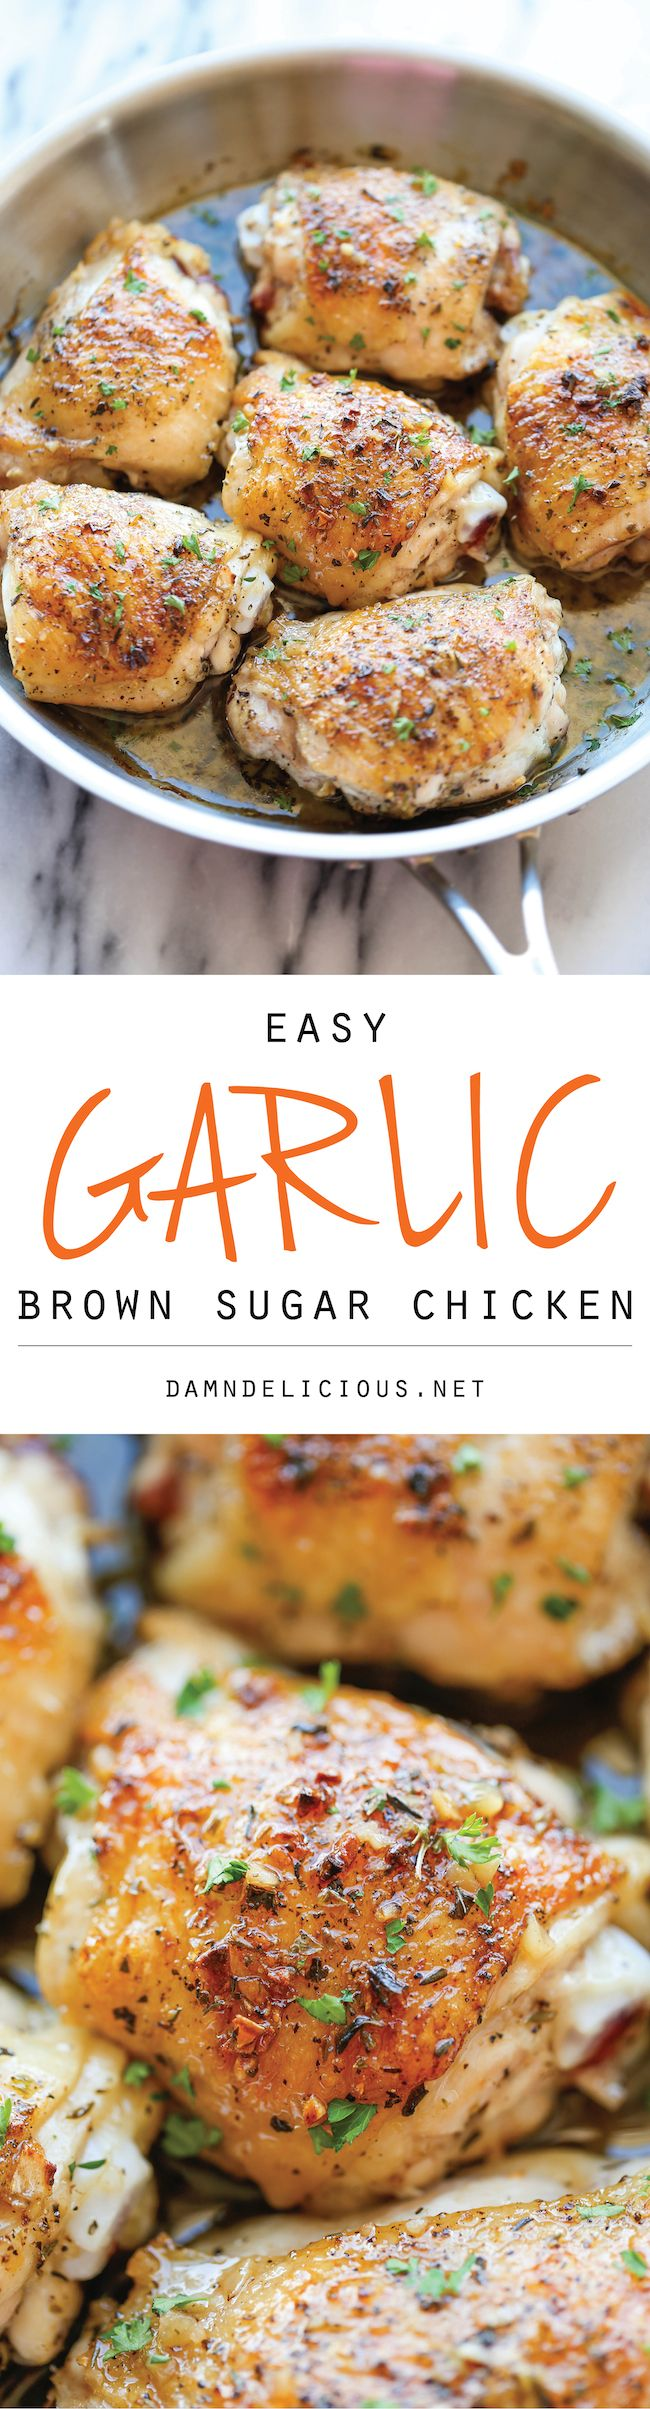 Garlic Brown Sugar Chicken – The best and easiest chicken ever, baked to crisp-tender perfection along with the most amazing sweet